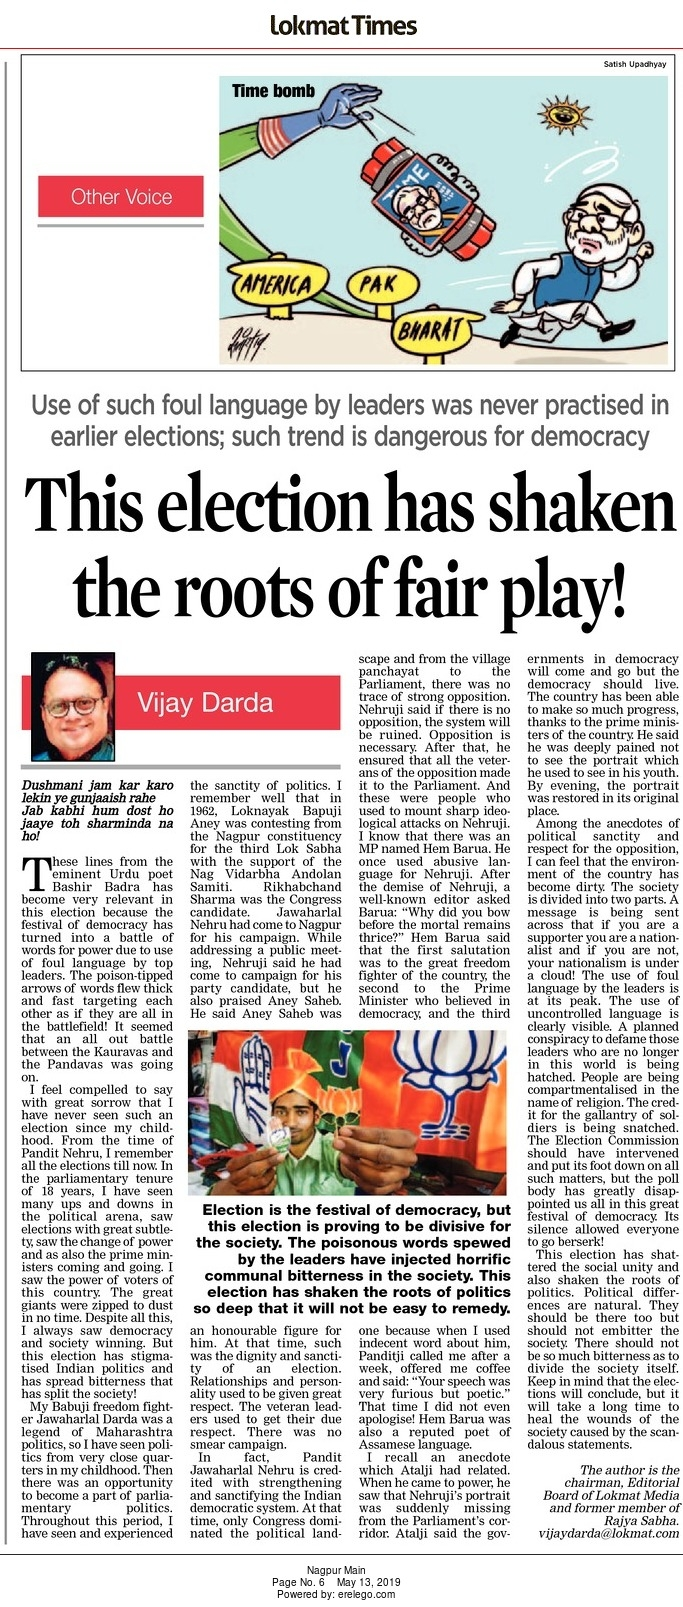 This election has shaken the roots of fair play!